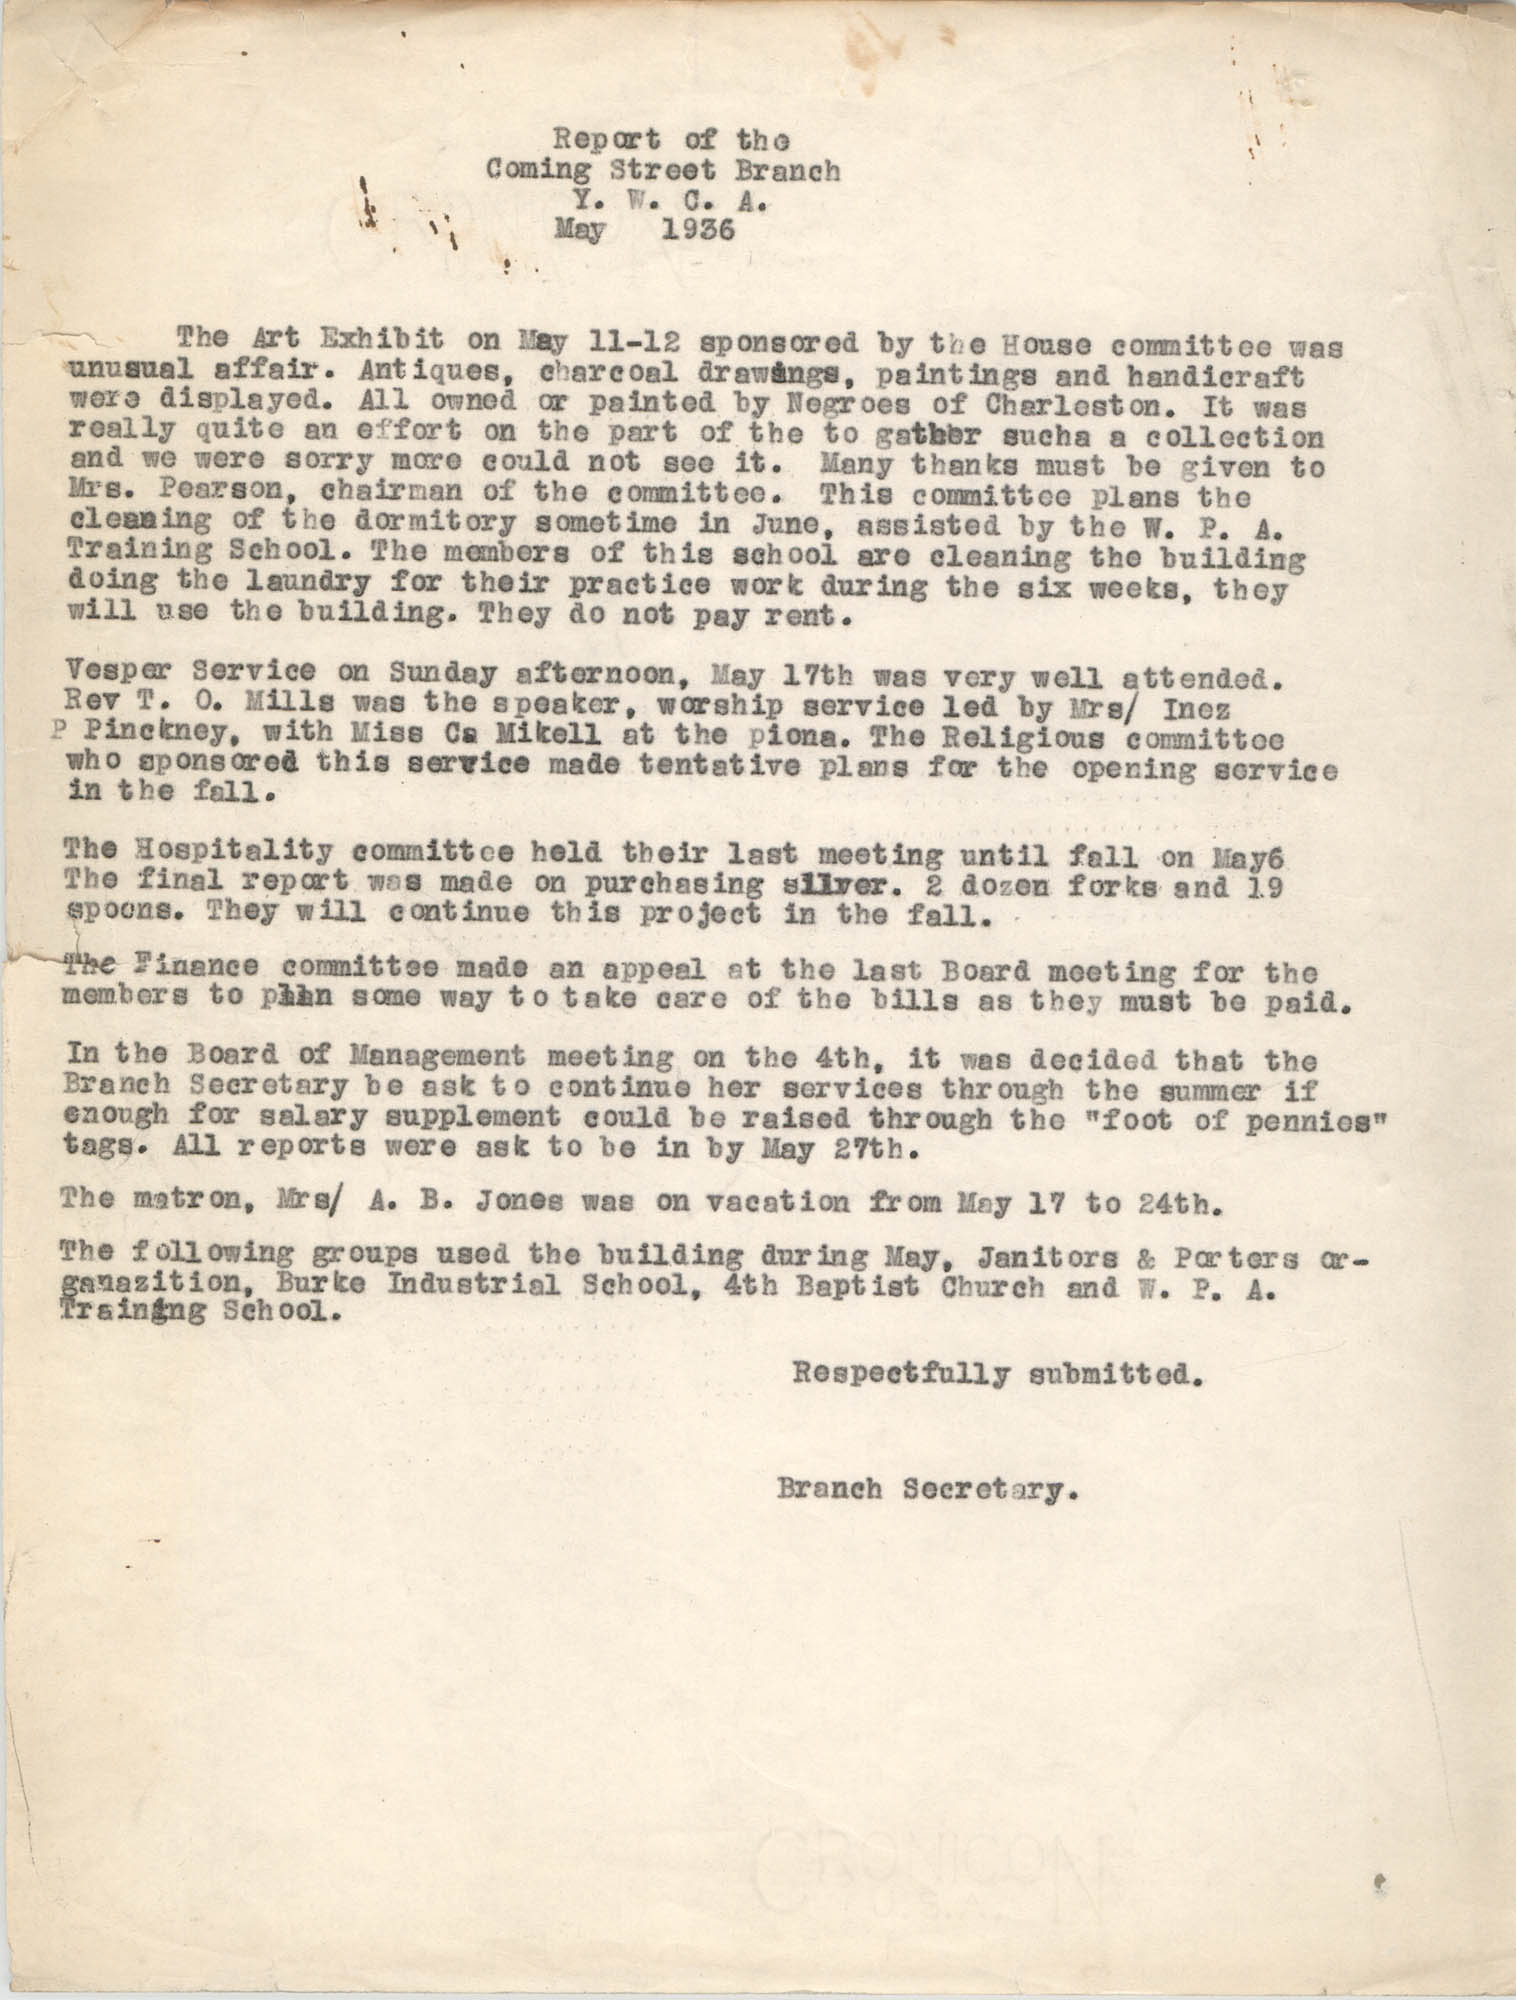 Monthly Report for the Coming Street Y.W.C.A., May 1936